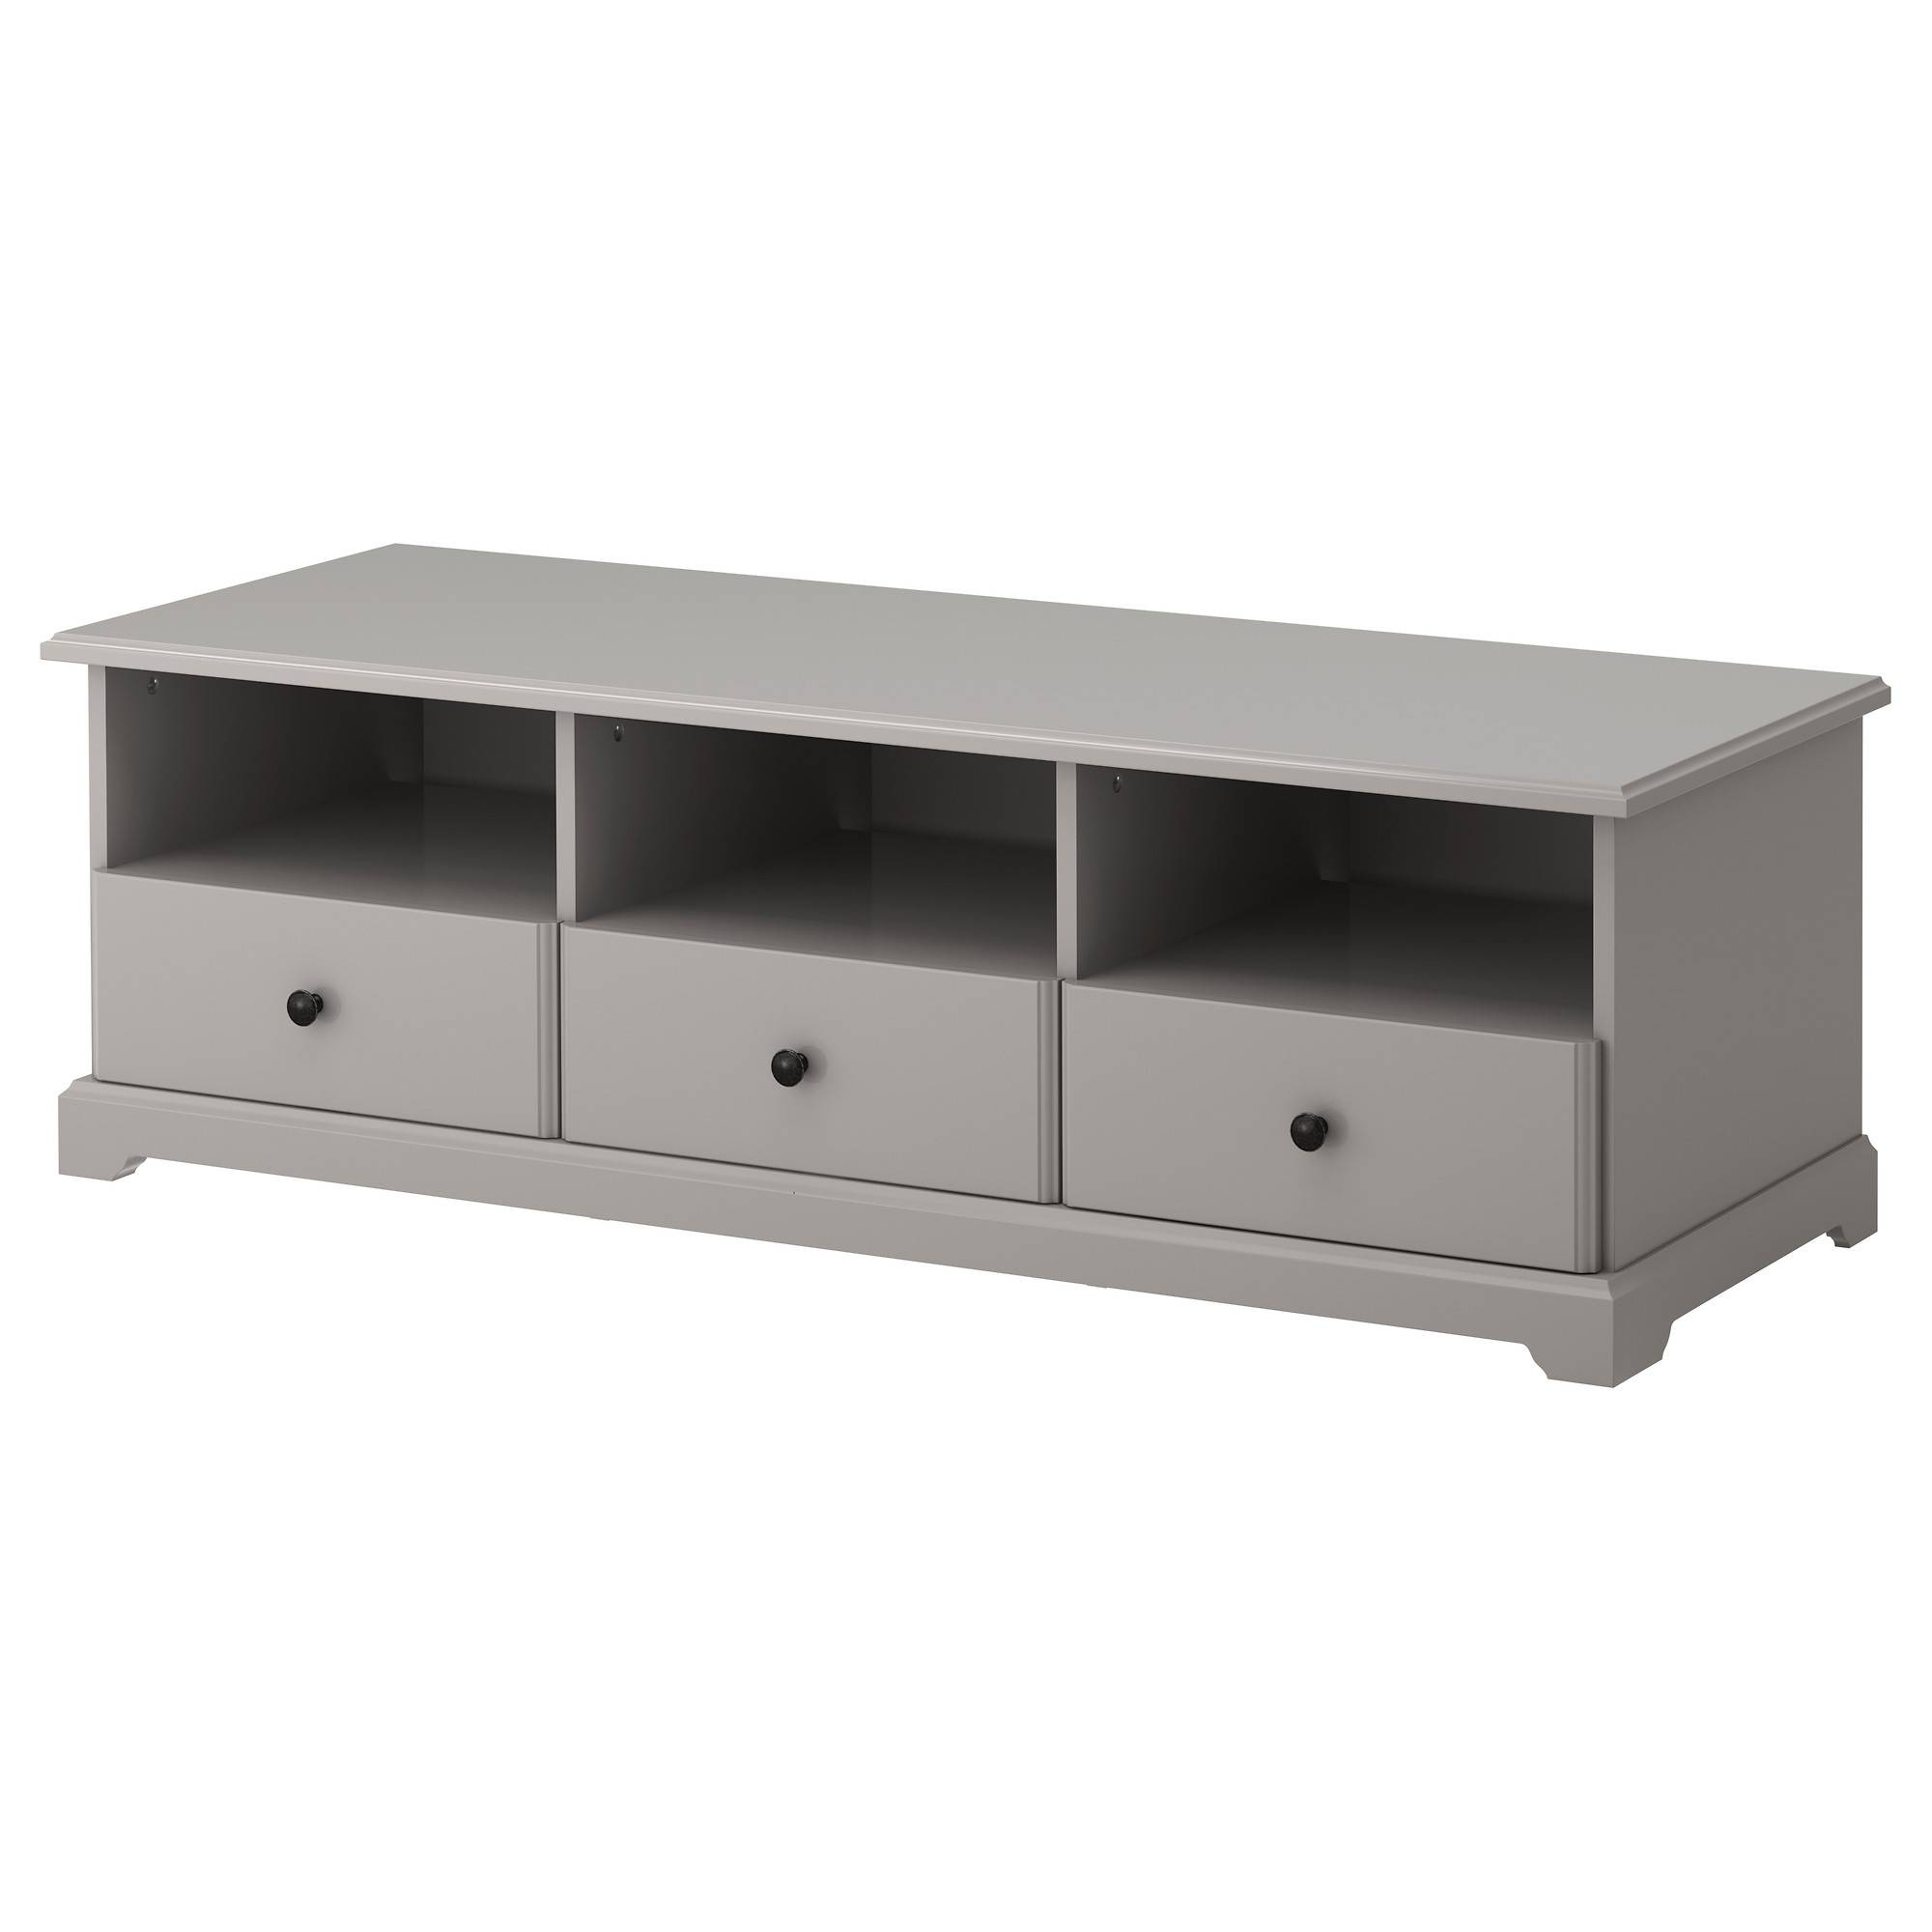 Tv Stands & Tv Units | Ikea Inside Small White Tv Cabinets (View 9 of 15)